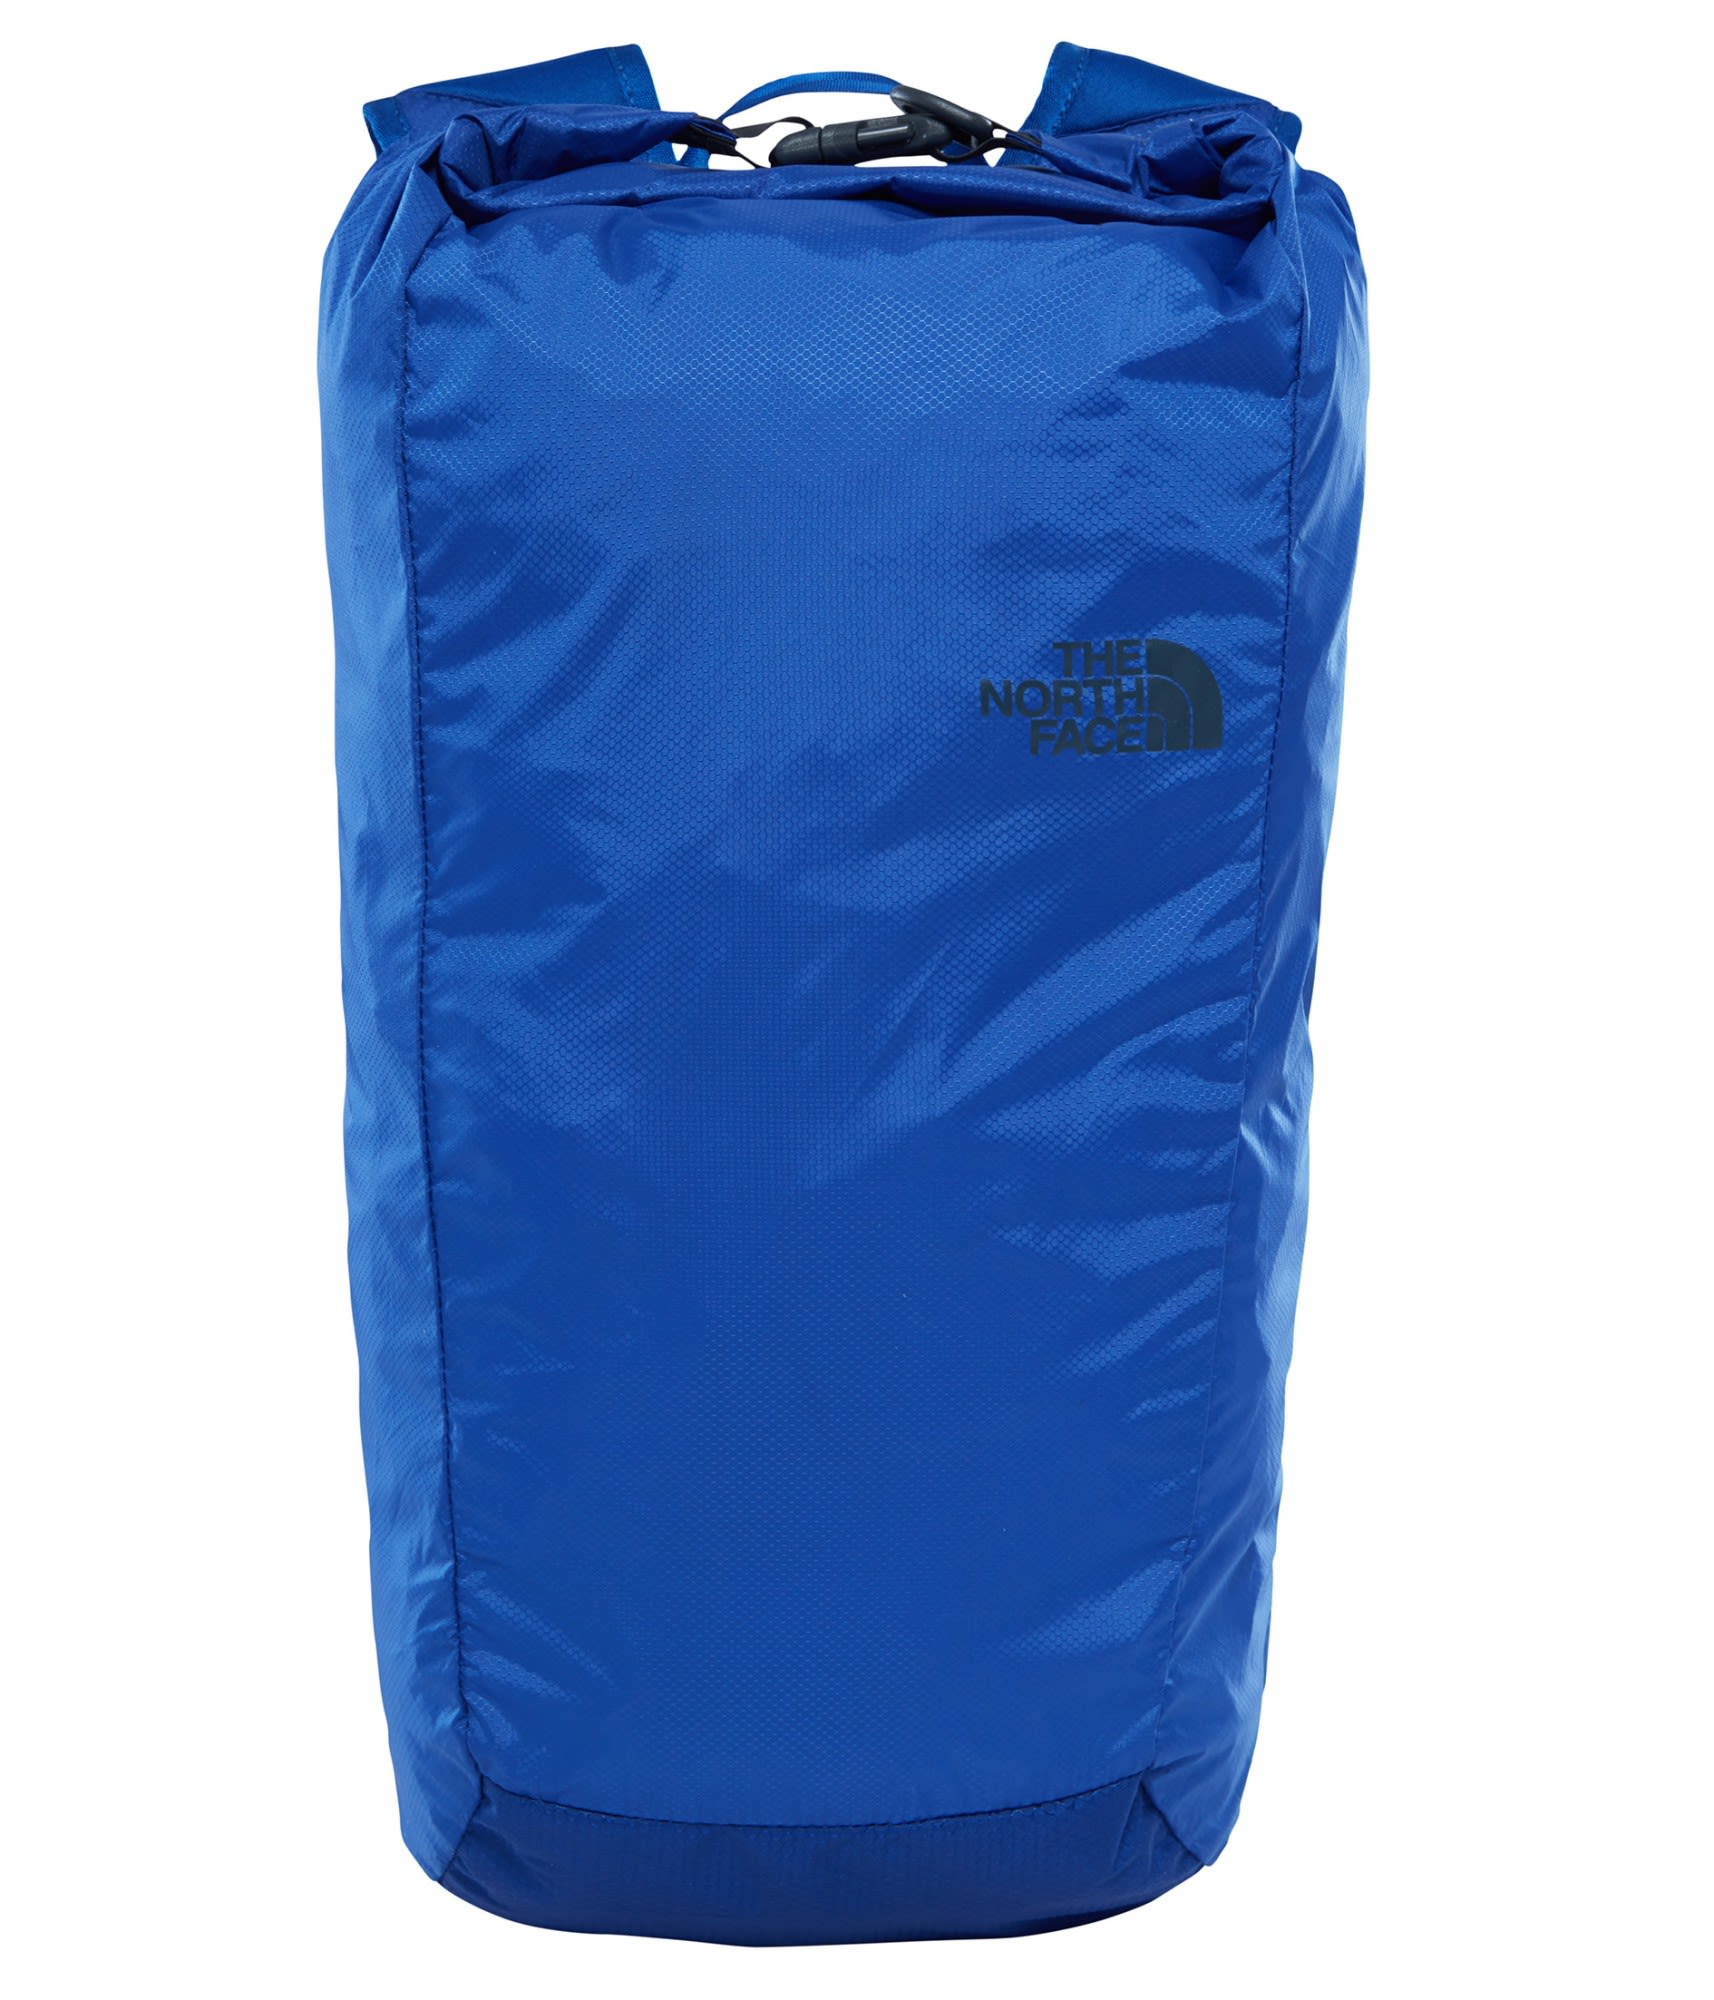 The North Face Flyweight Rolltop | Größe 22l |  Daypack